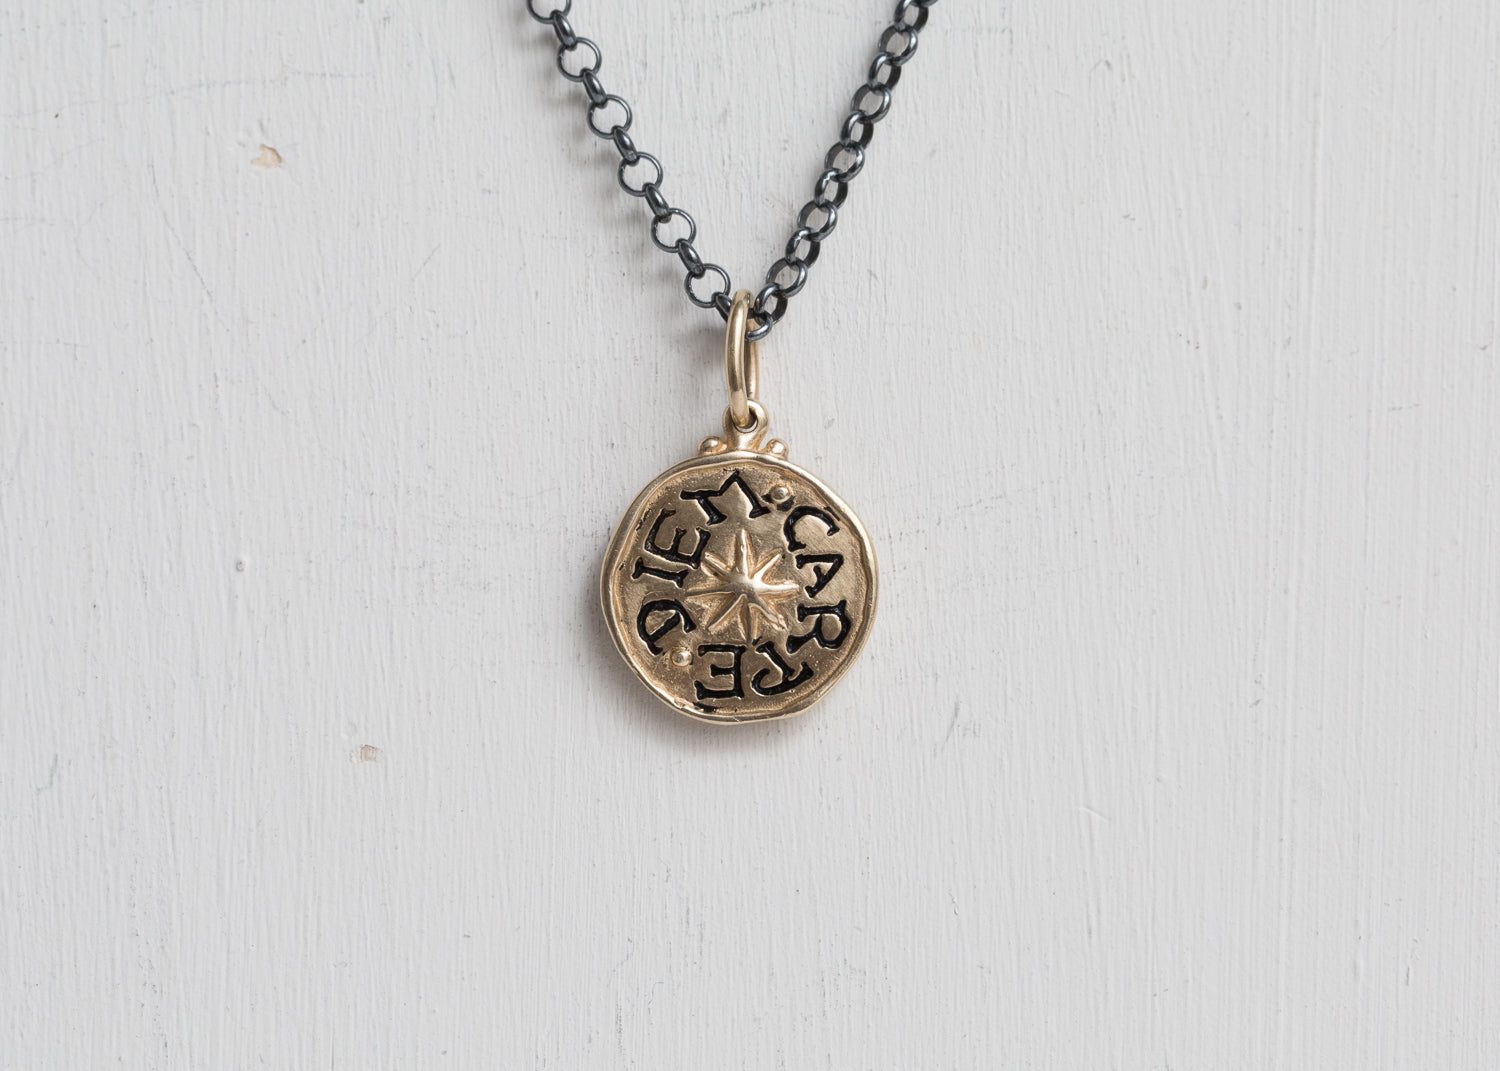 Erica Molinari Base Charm Bee + Star